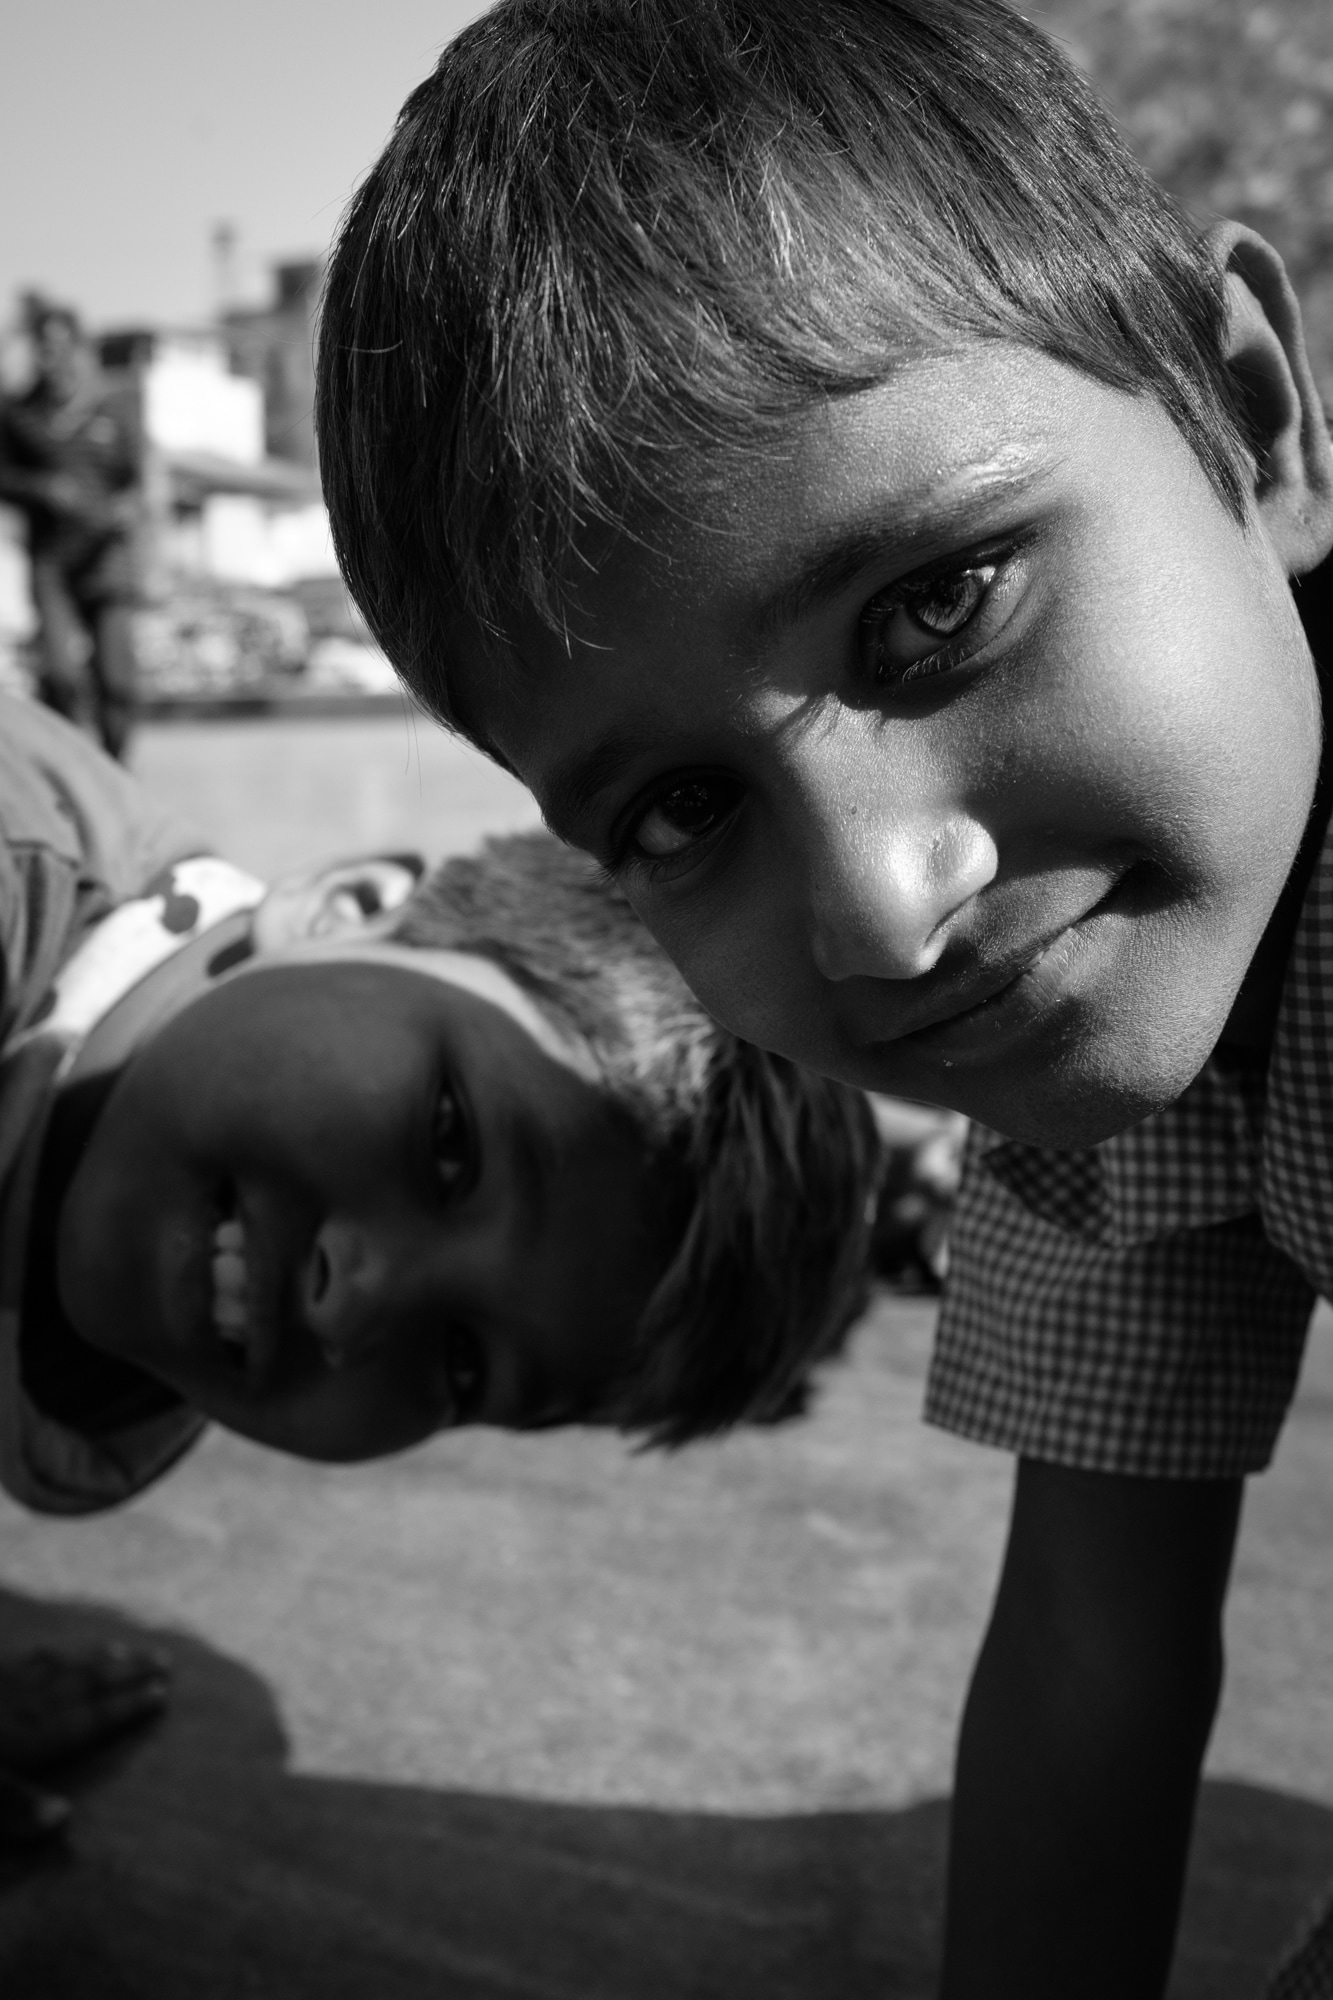 Curious kids look at the camera. Ahmedabad.